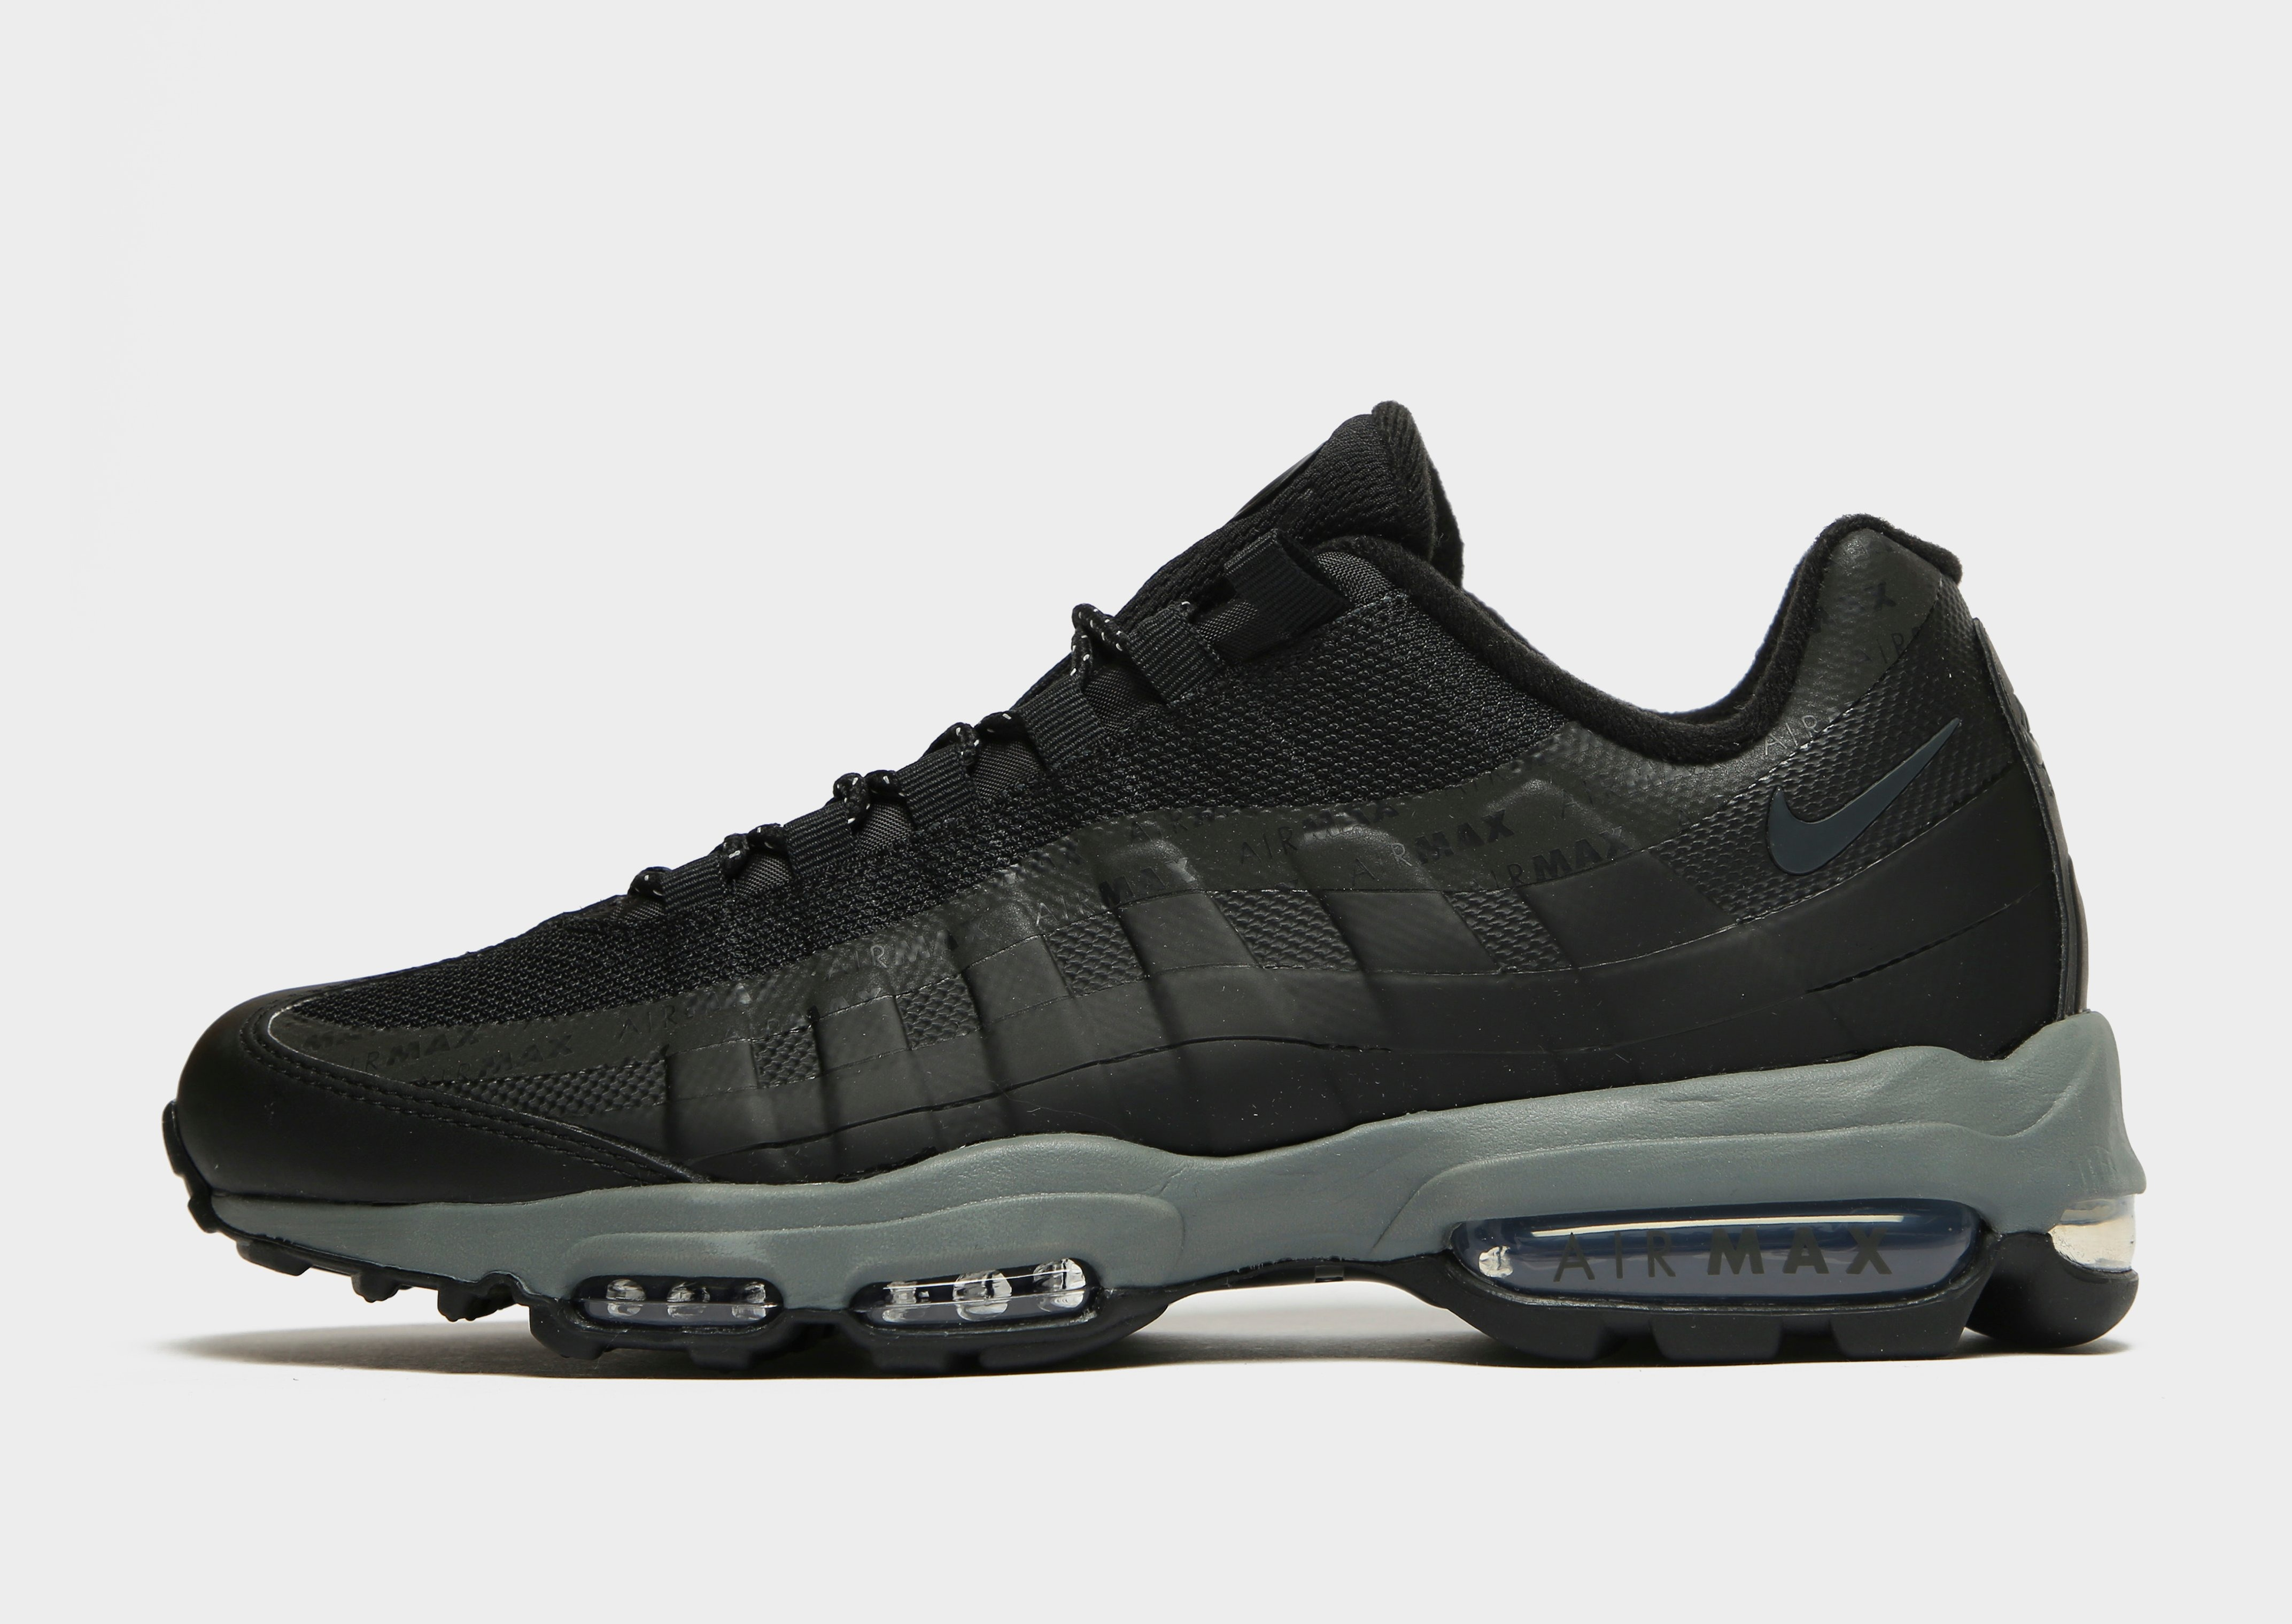 trolebús vaso Lago taupo  Buy Nike Air Max 95 Ultra SE | JD Sports